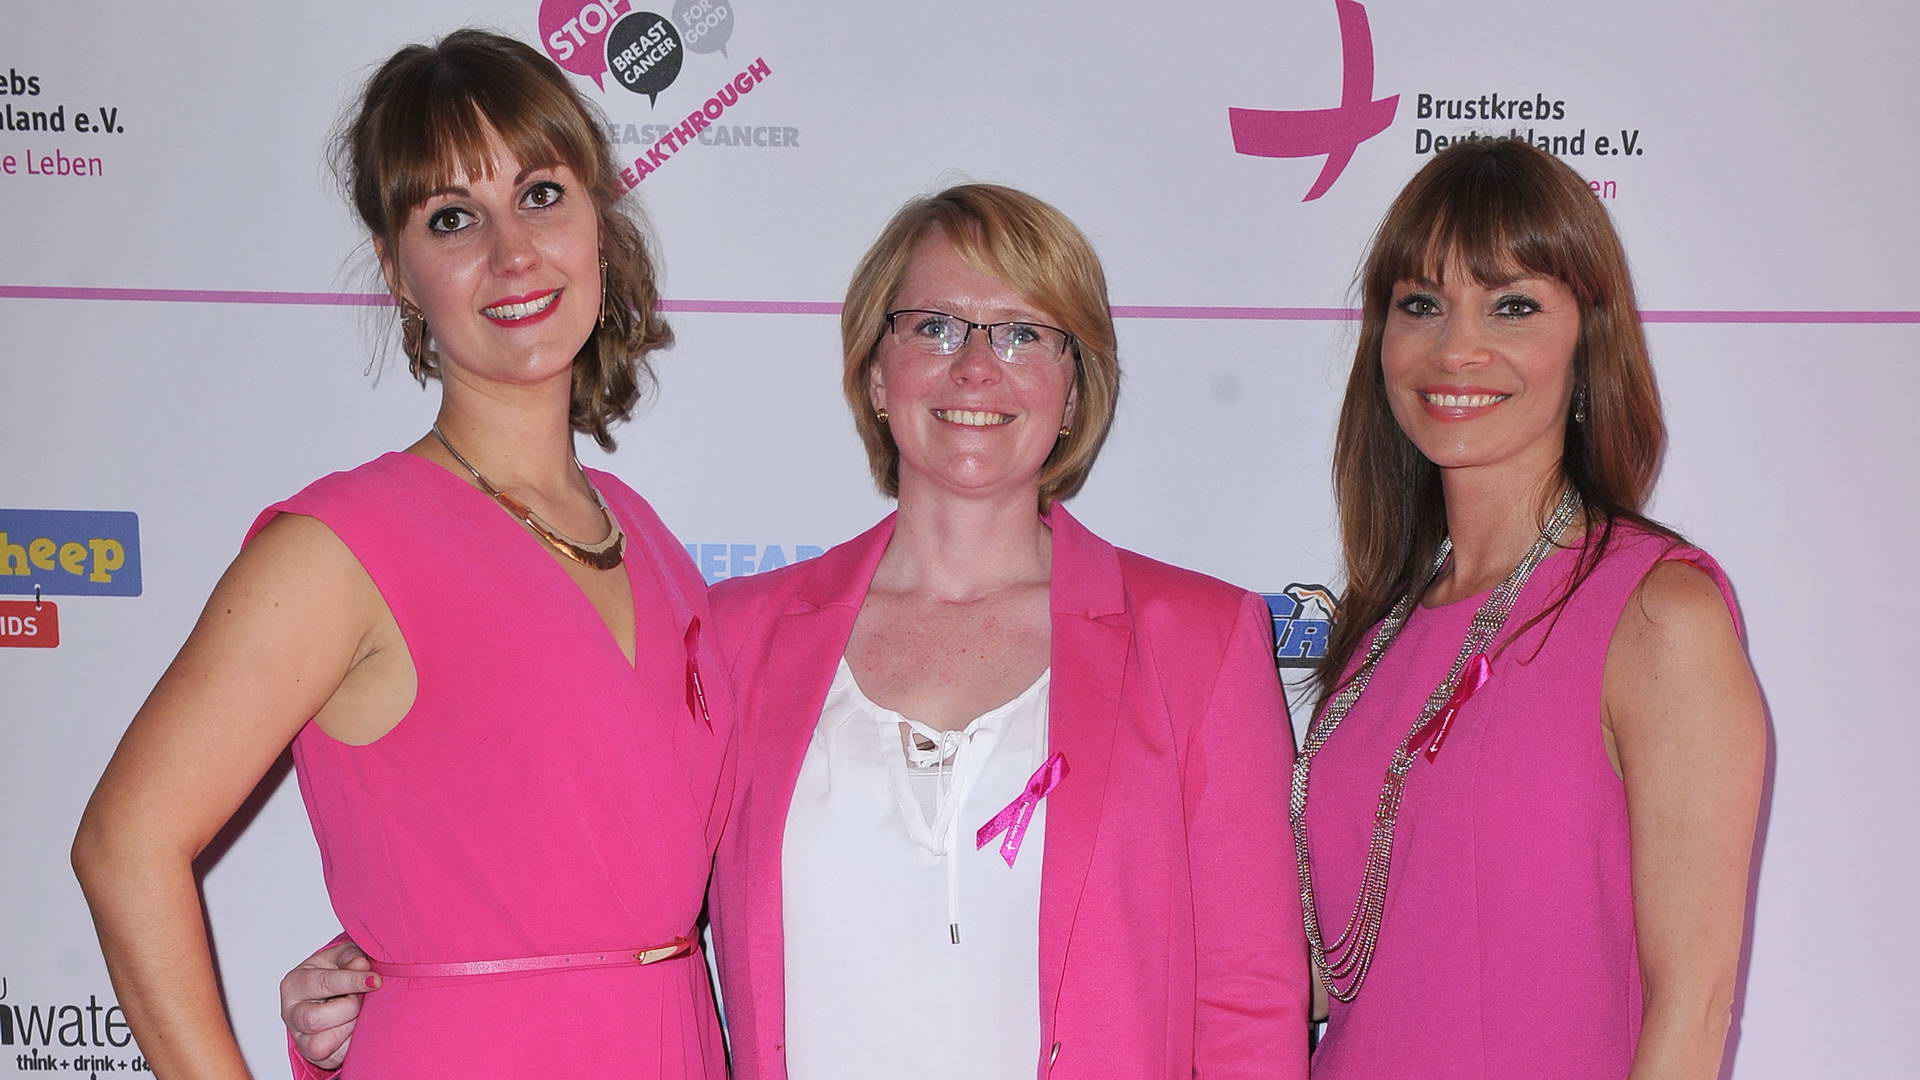 Sophie Power, Antje Koch, Jean Bork Sophie Power; Antje Koch; Jean Bork  -  Pink Ball Charity Event für Brustkrebs-Opfer im Holmes Place  in Berlin  am 23.05.2015 -  Foto: SuccoMedia / Ralf Succo